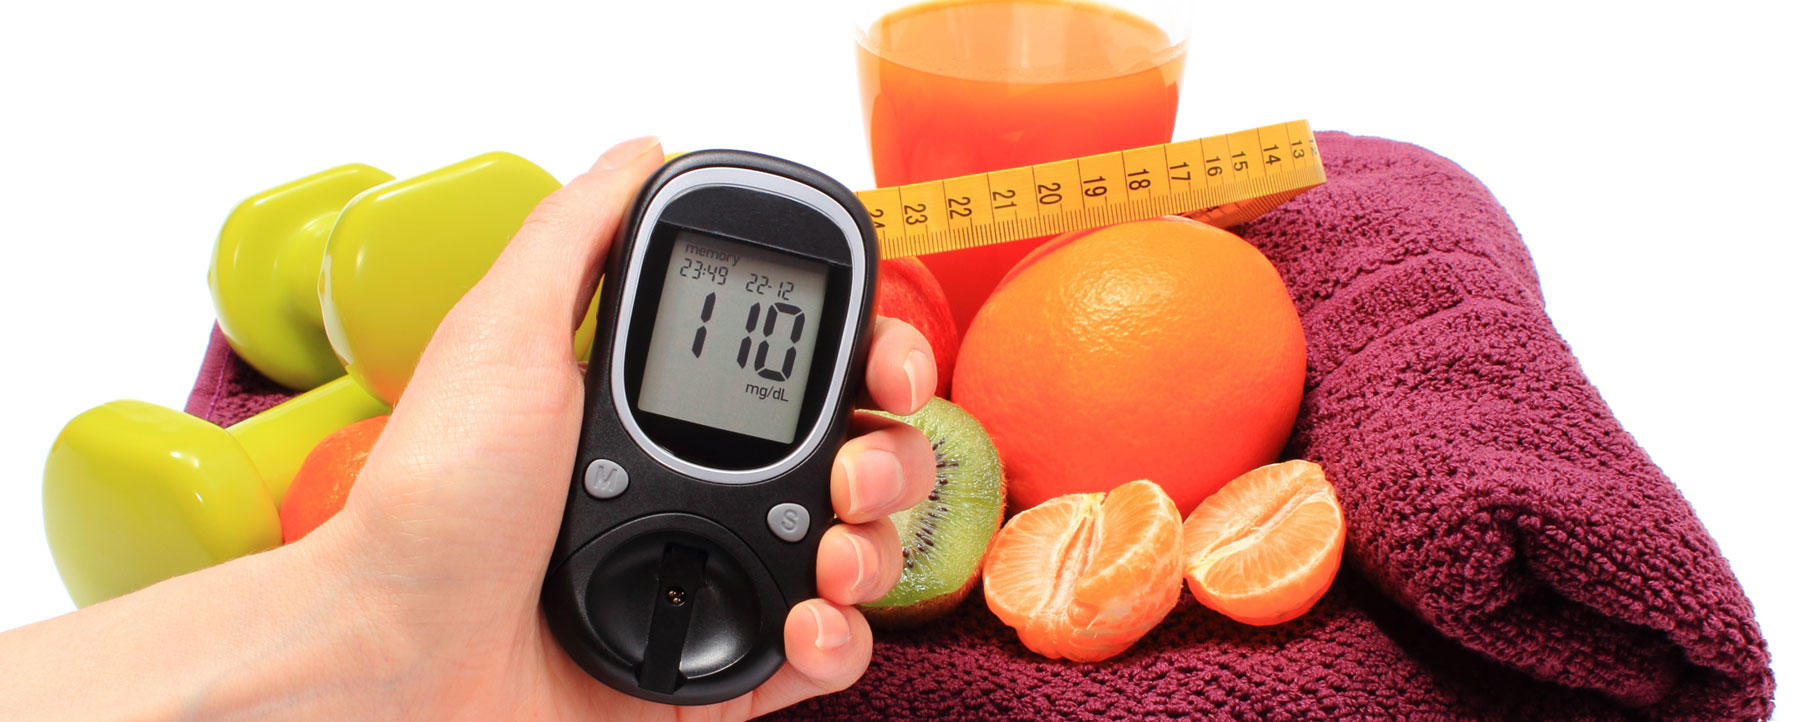 Hand with glucometer, fruits, tape measure, juice and dumbbells